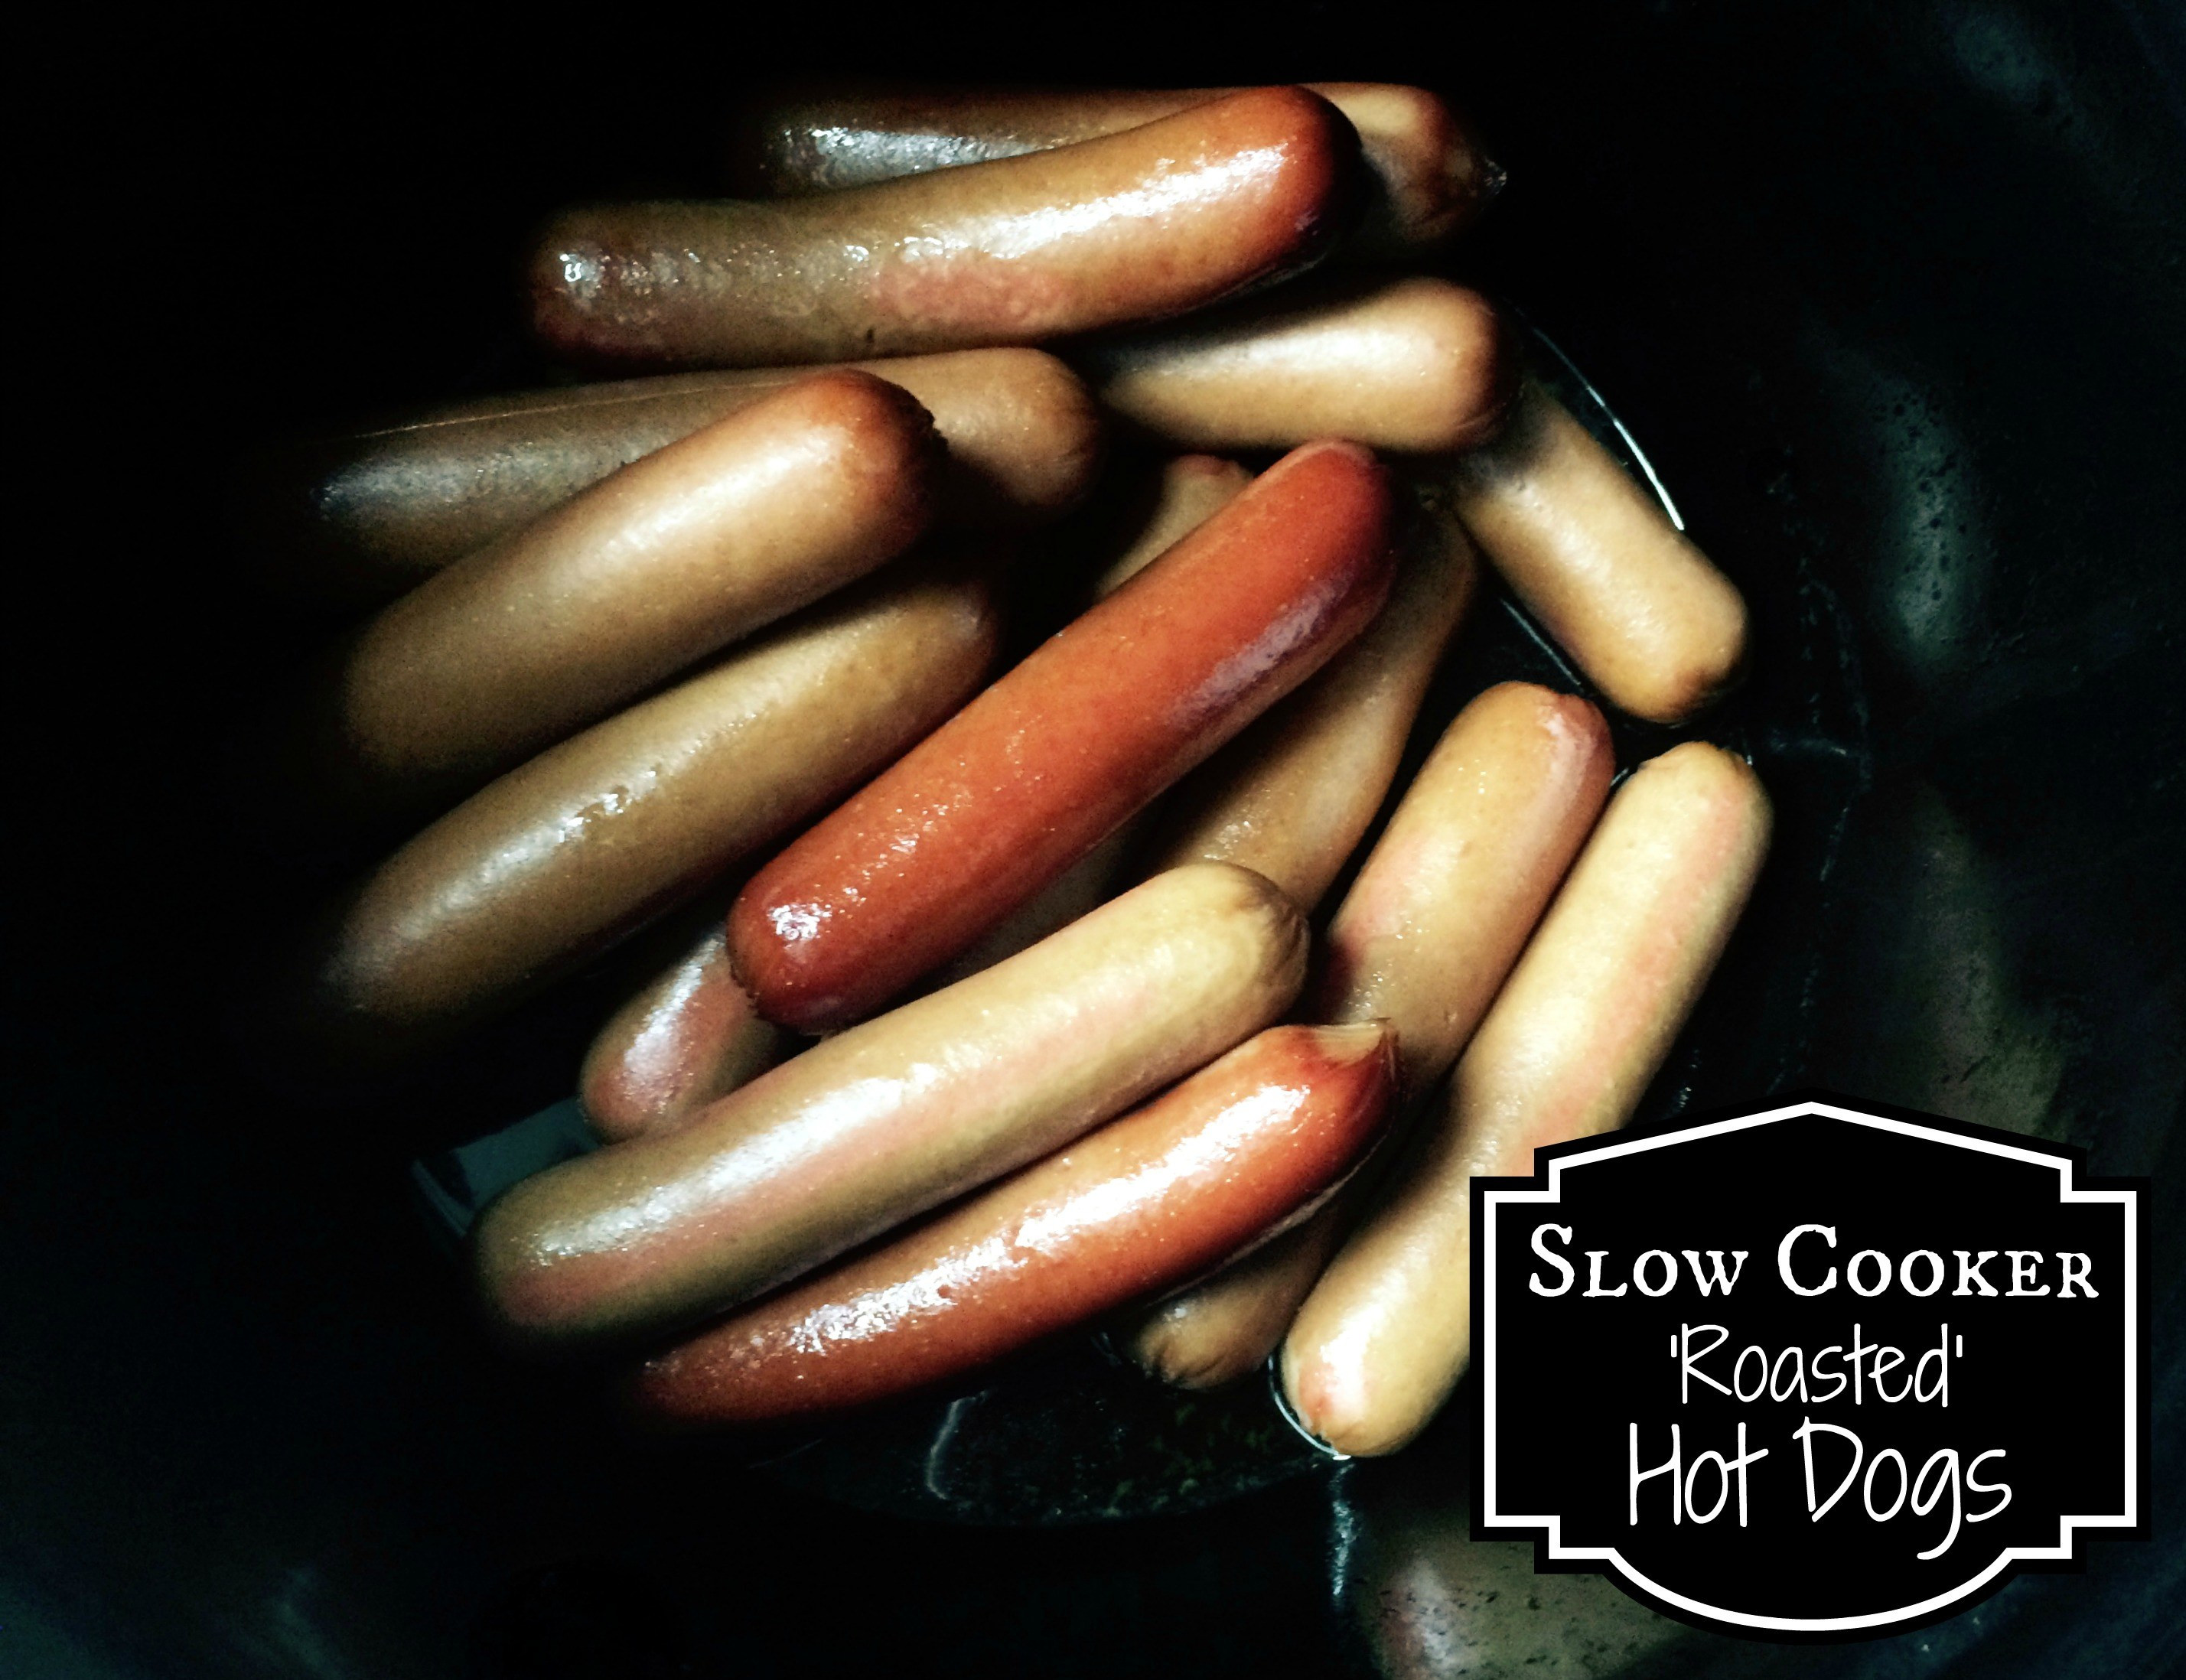 Slow Cooker Hot Dogs  Slow Cooker Roasted Hot Dogs Aunt Bee s Recipes